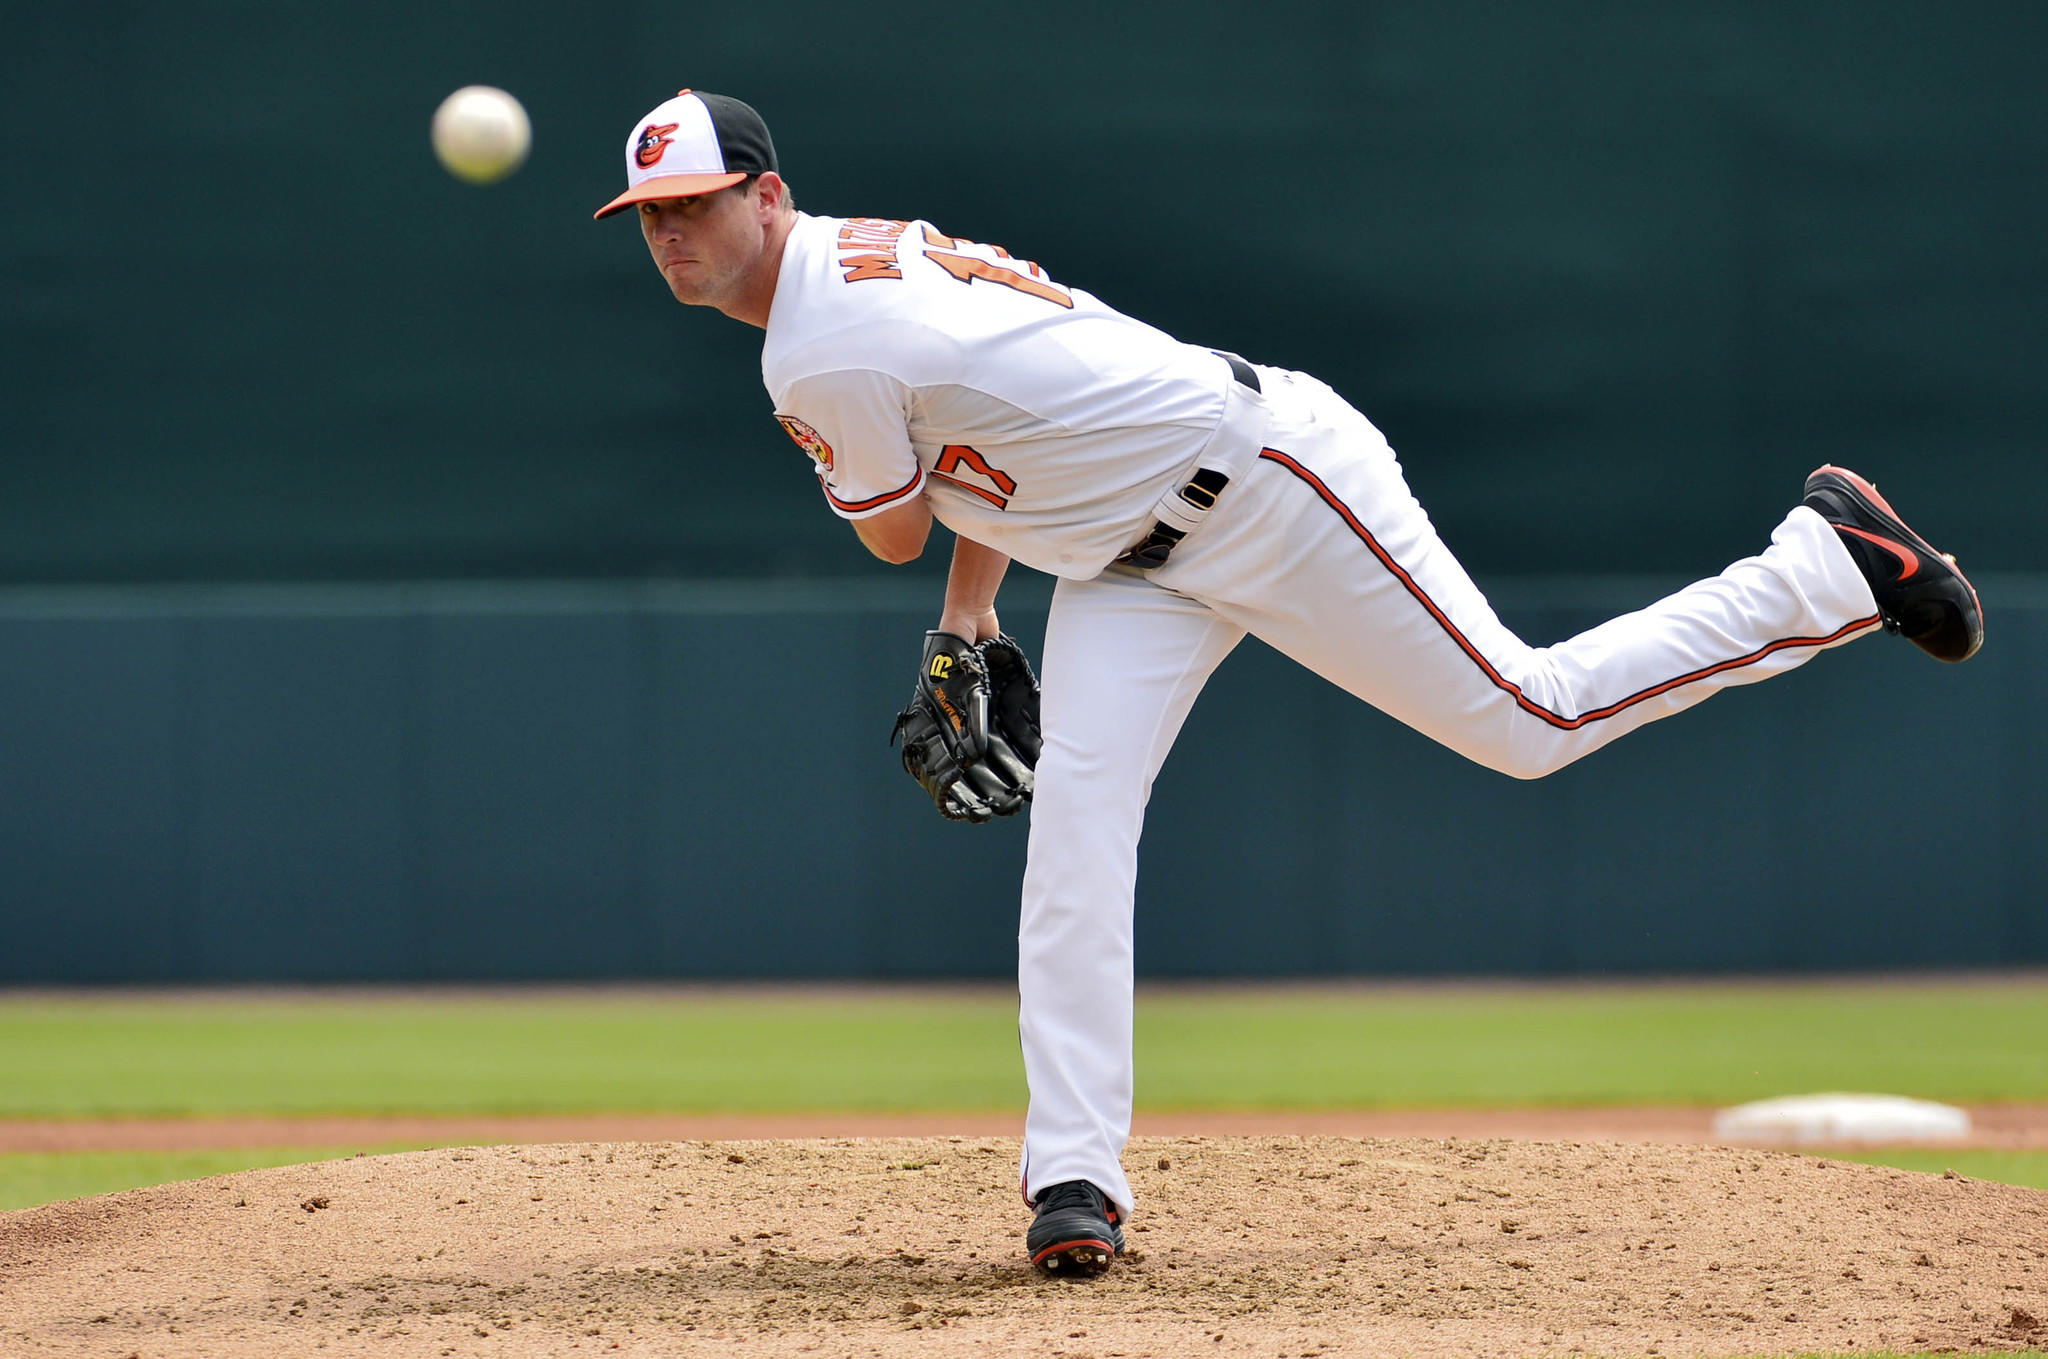 Orioles left-hander Brian Matusz pitches during the fourth inning at Ed Smith Stadium.